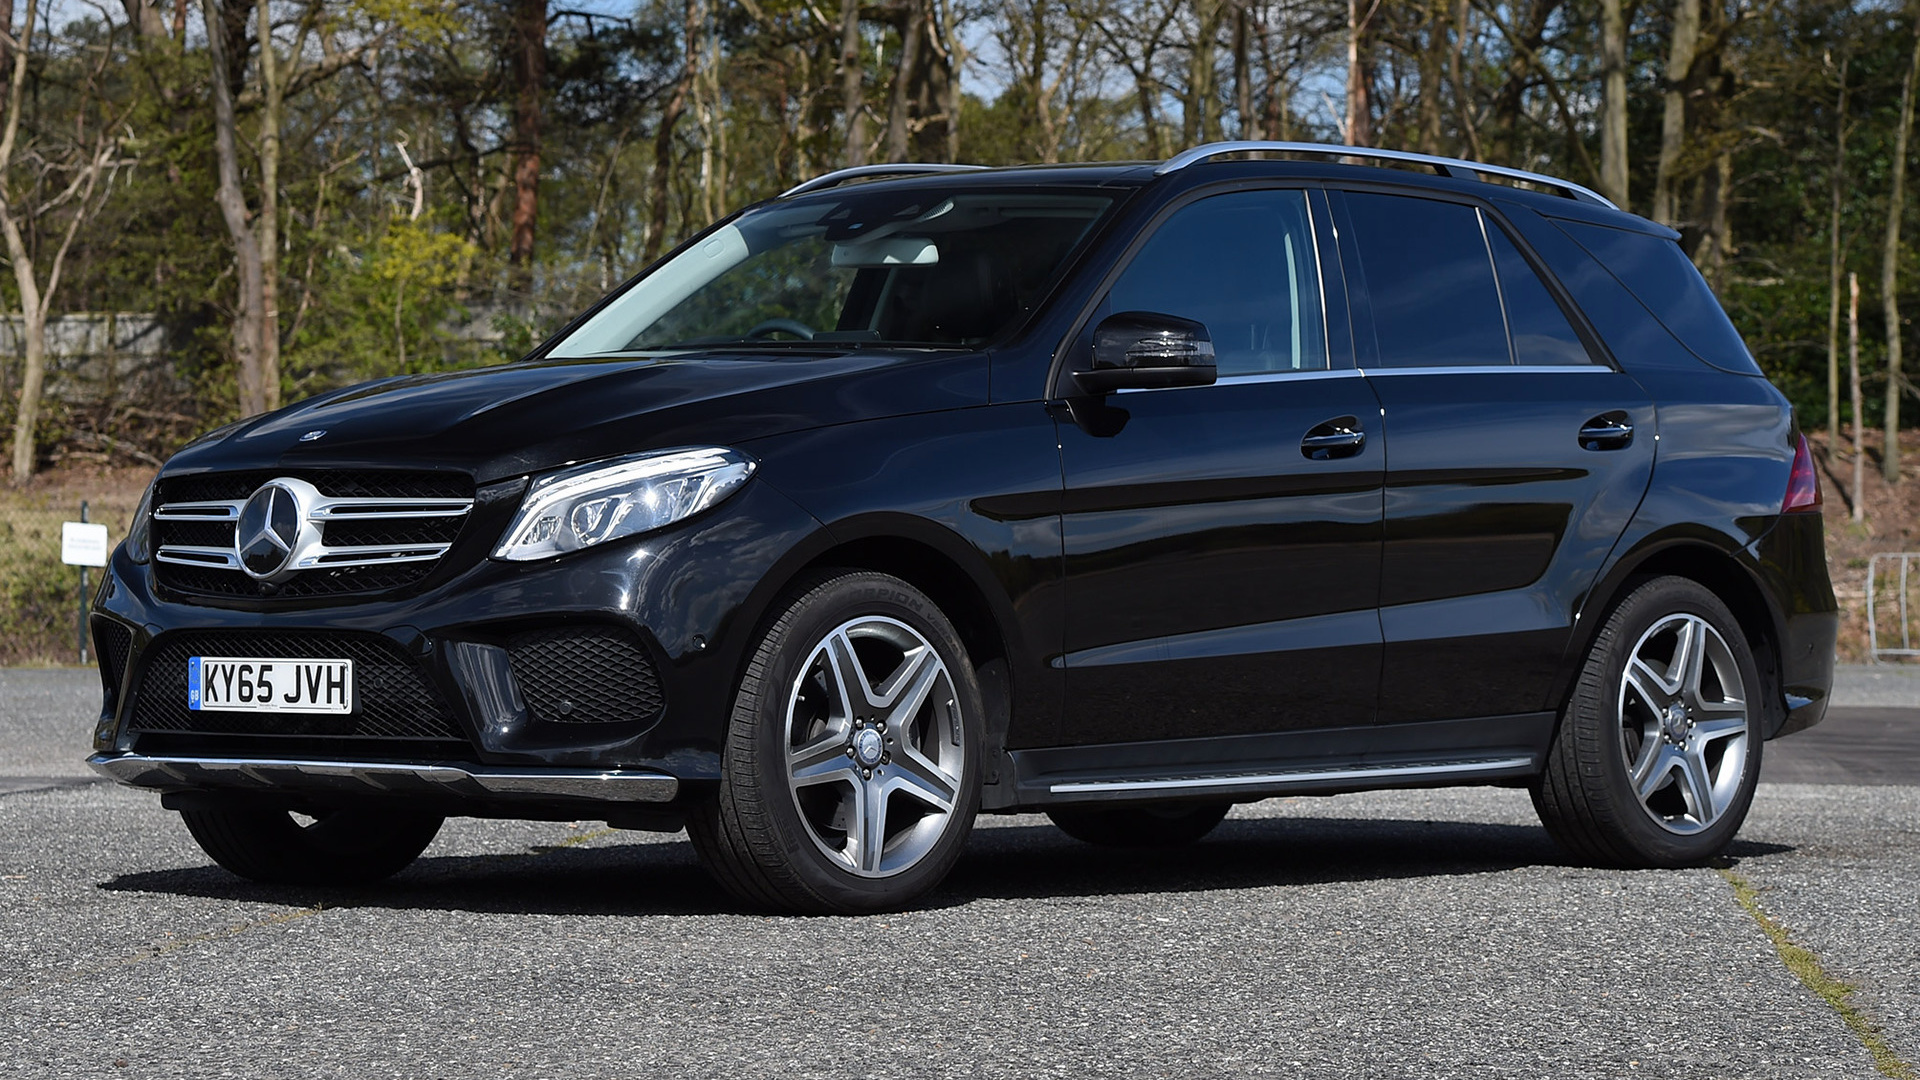 mercedes benz gle class amg line 2015 uk wallpapers and hd images car pixel. Black Bedroom Furniture Sets. Home Design Ideas